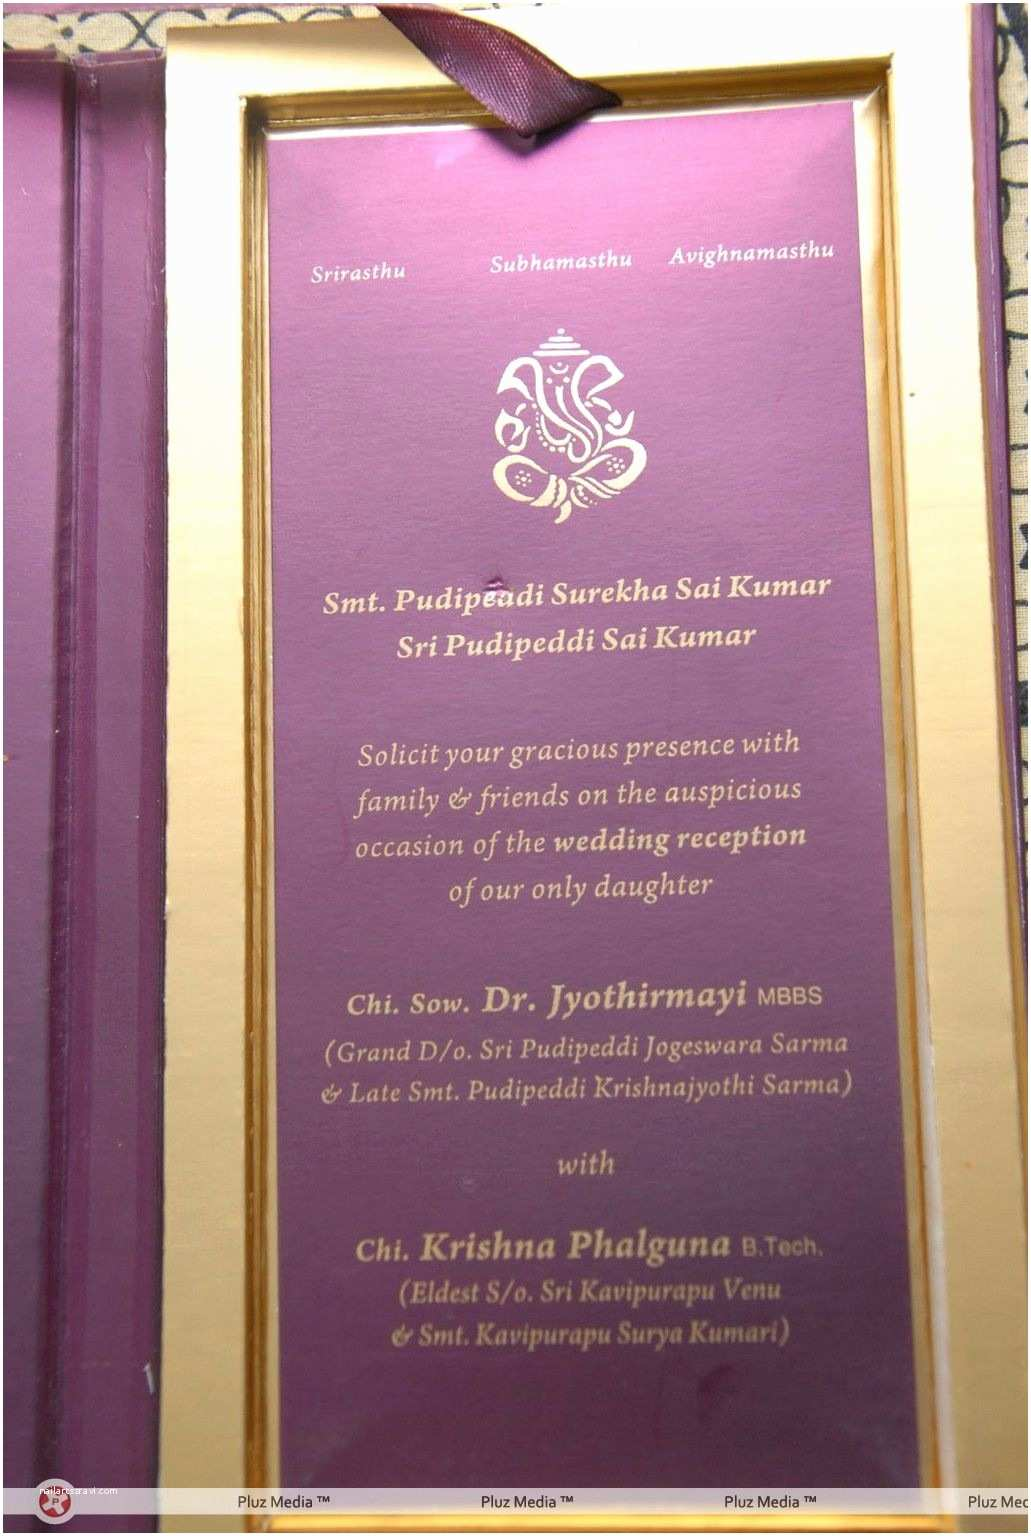 New Wedding Invitations New Card for Wedding Invites In Hindi the Best Wedding